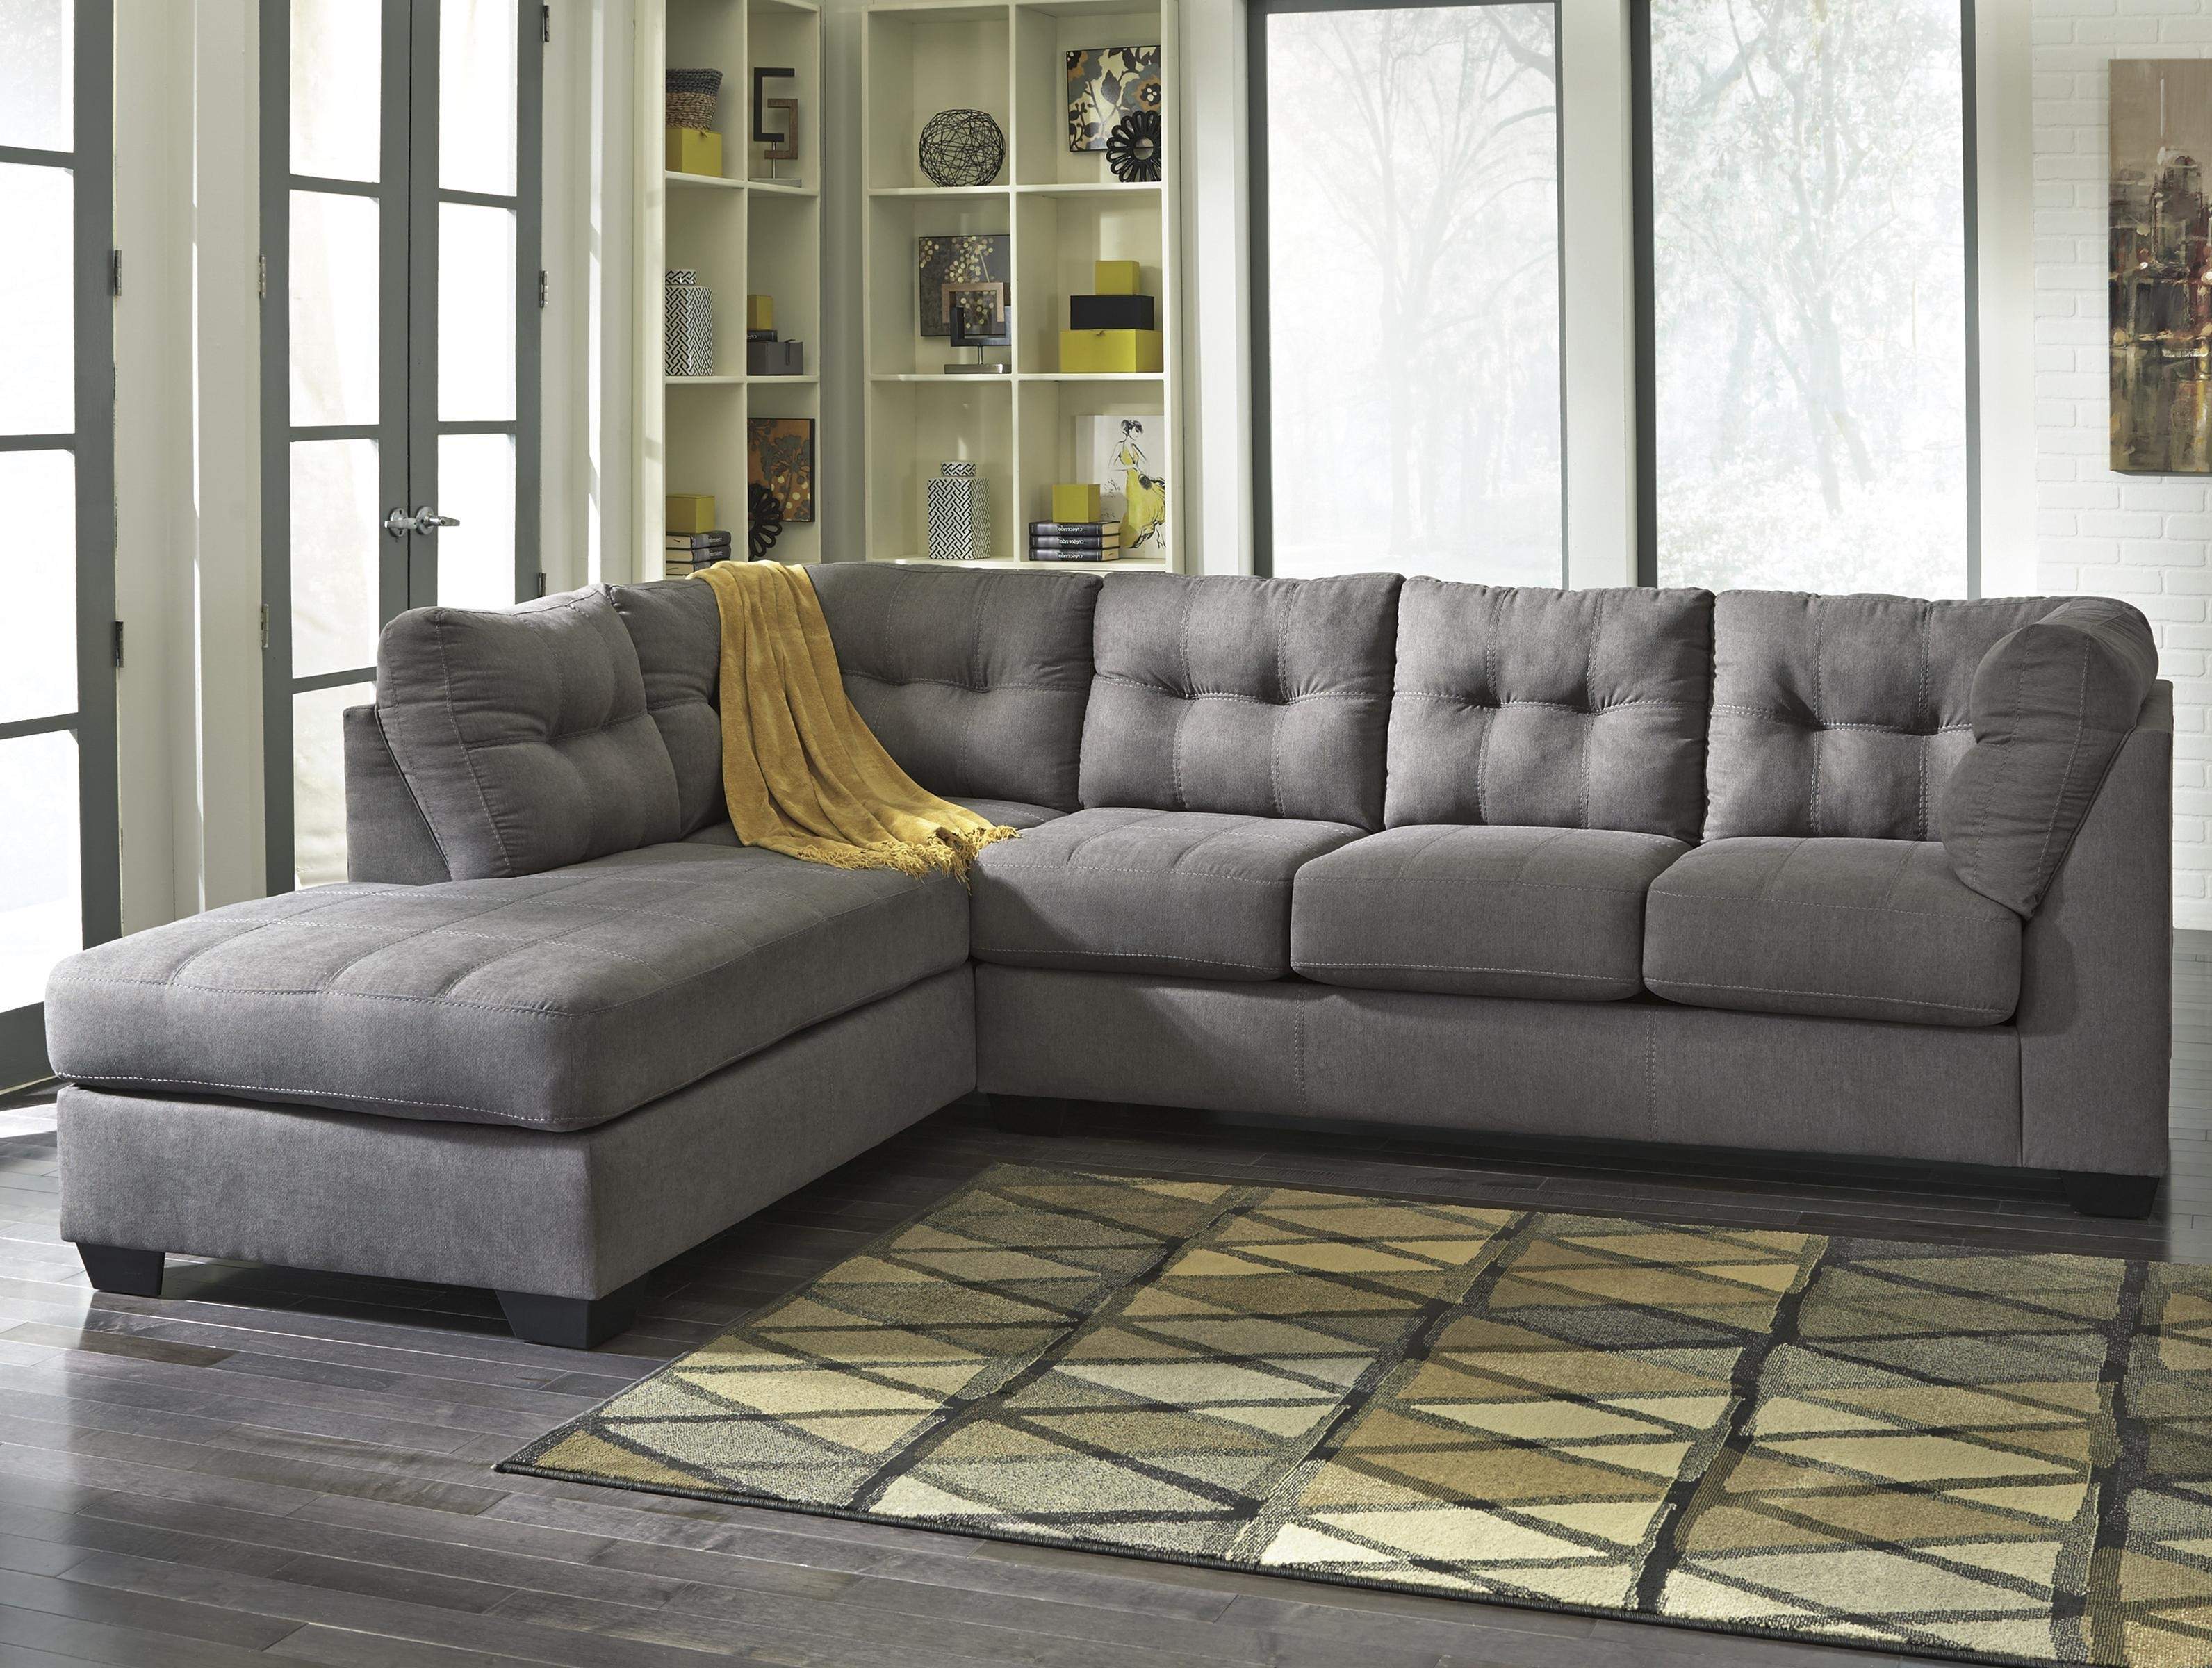 Benchcraft Maier – Charcoal 2 Piece Sectional W/ Sleeper Sofa & Left Within Glamour Ii 3 Piece Sectionals (Image 3 of 25)